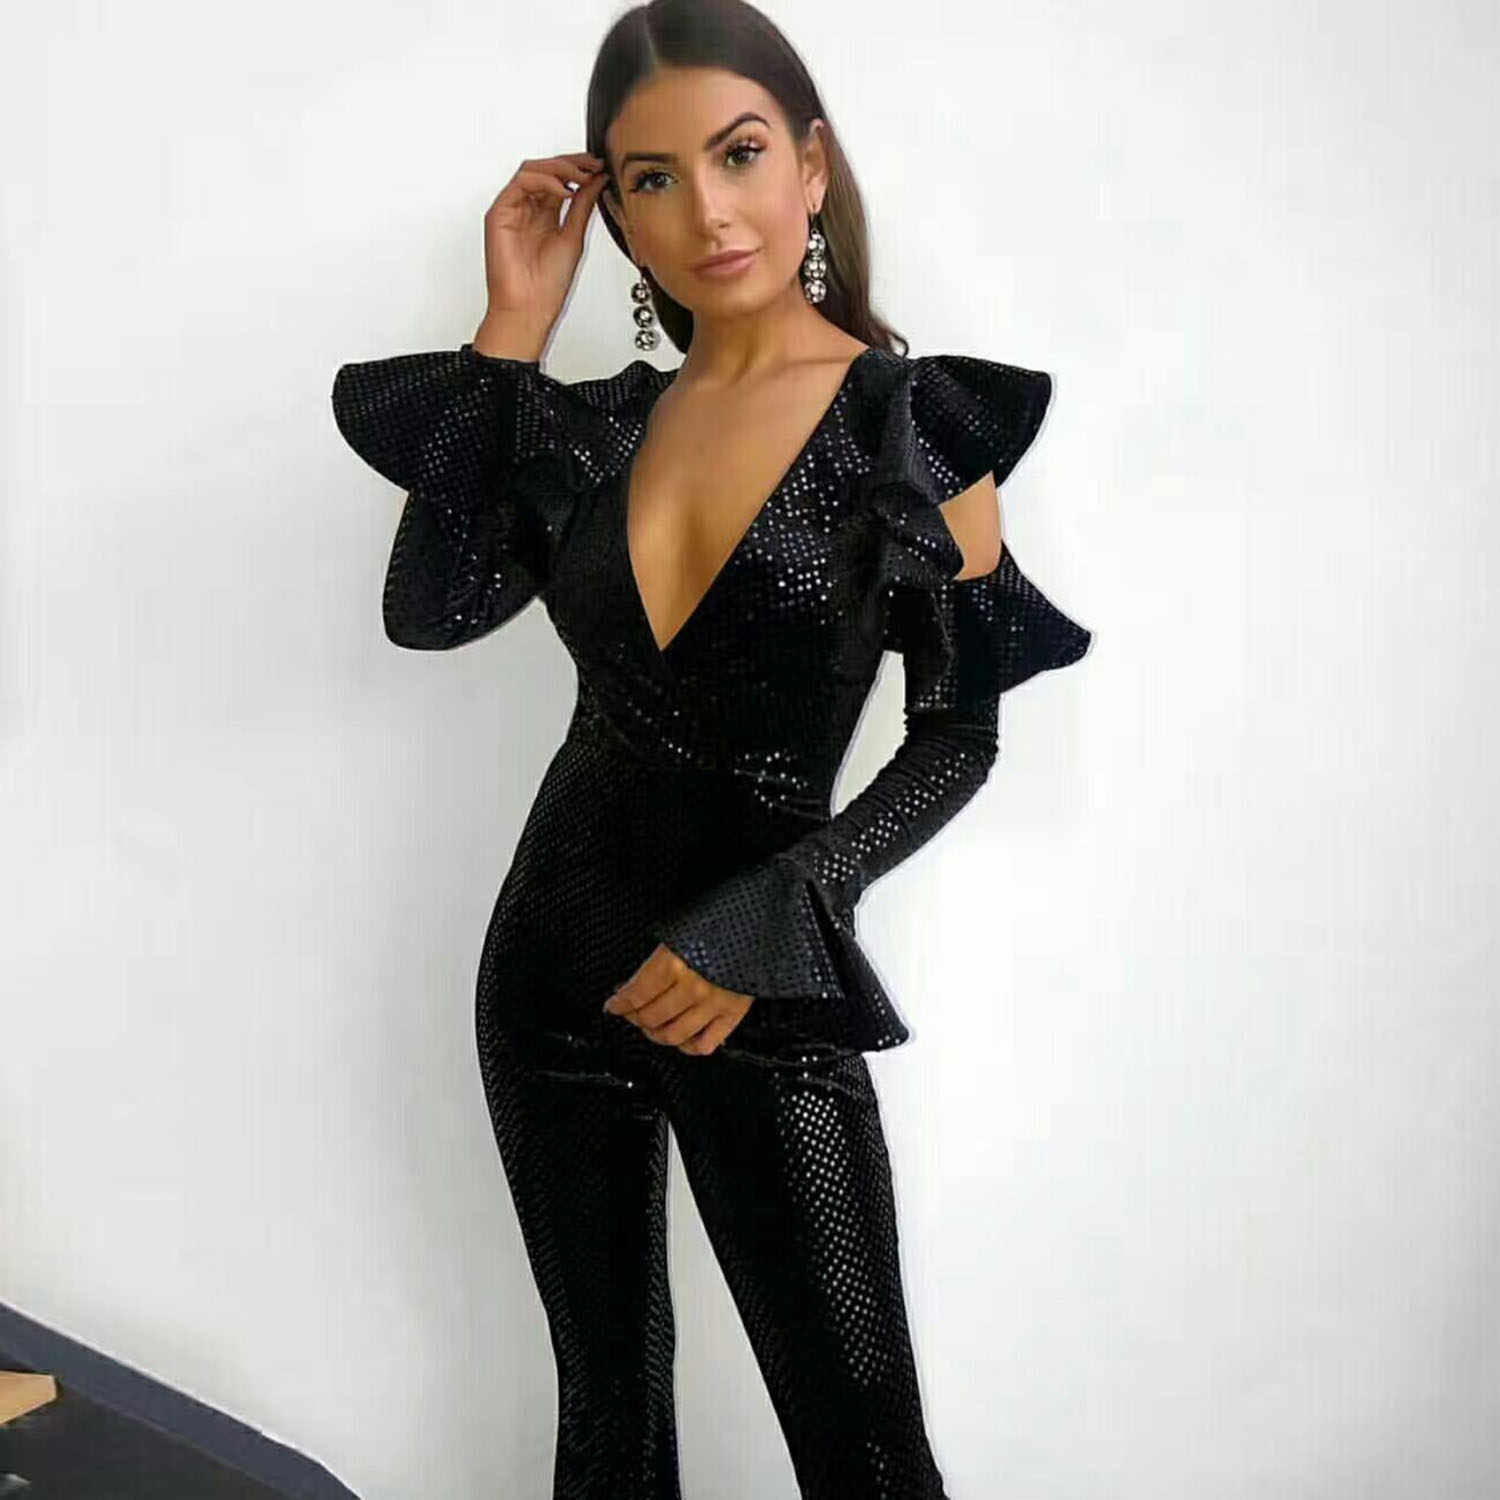 621168c4101 MEQEISS Black Sequin Jumpsuit Women Long Sleeve Sparkly Bodycon Jumpsuits  Sexy Rompers Glitter Club Party Jumpsuits